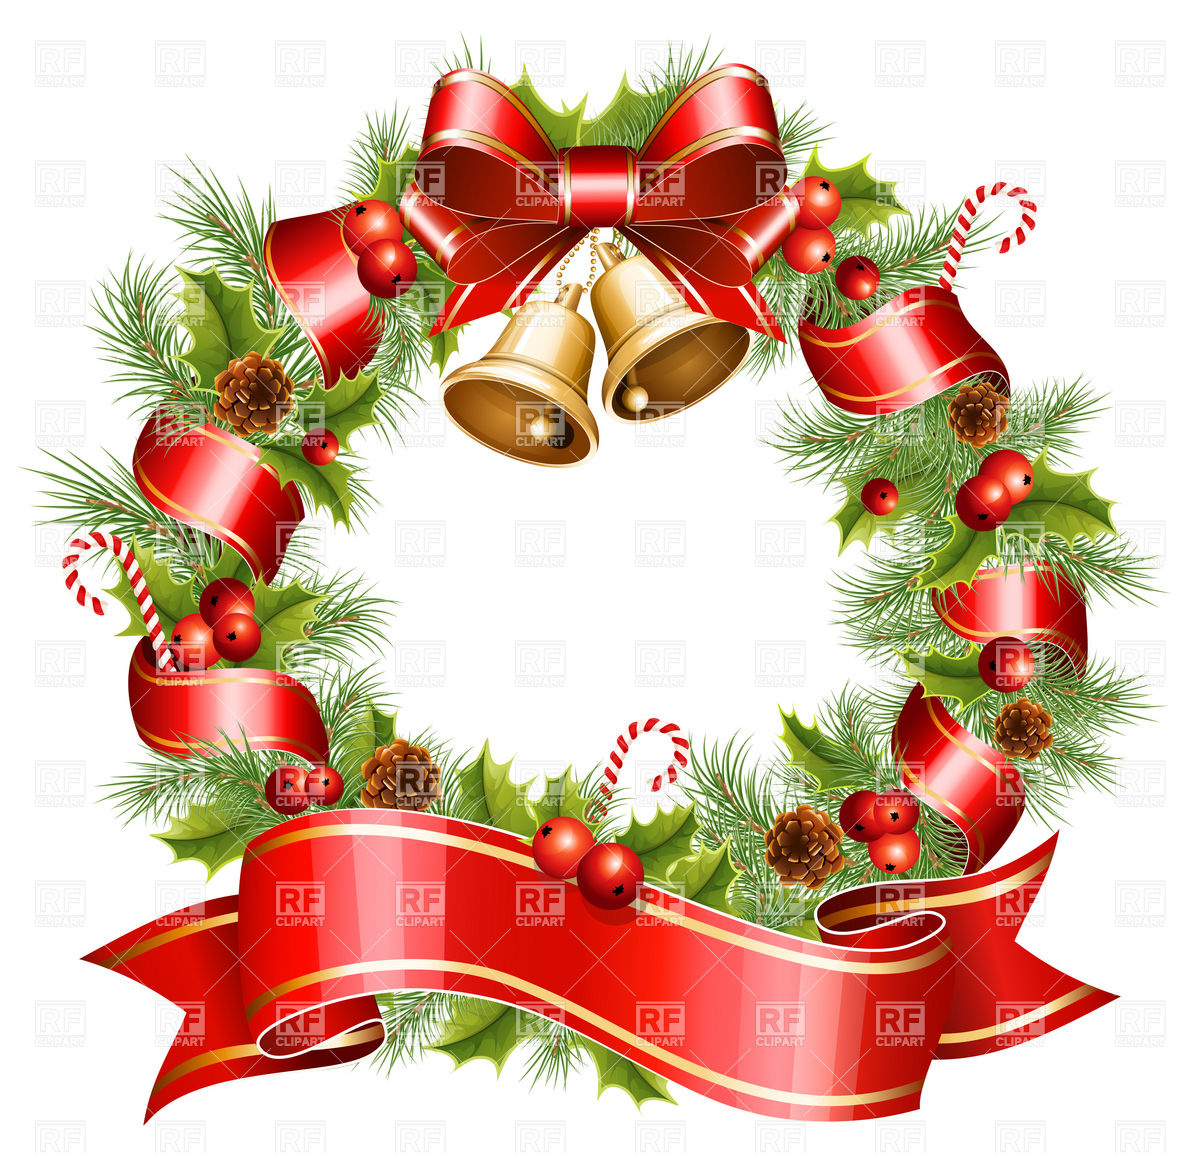 Christmas Pictures Free Download.Christmas Vector Art Free Download At Getdrawings Com Free